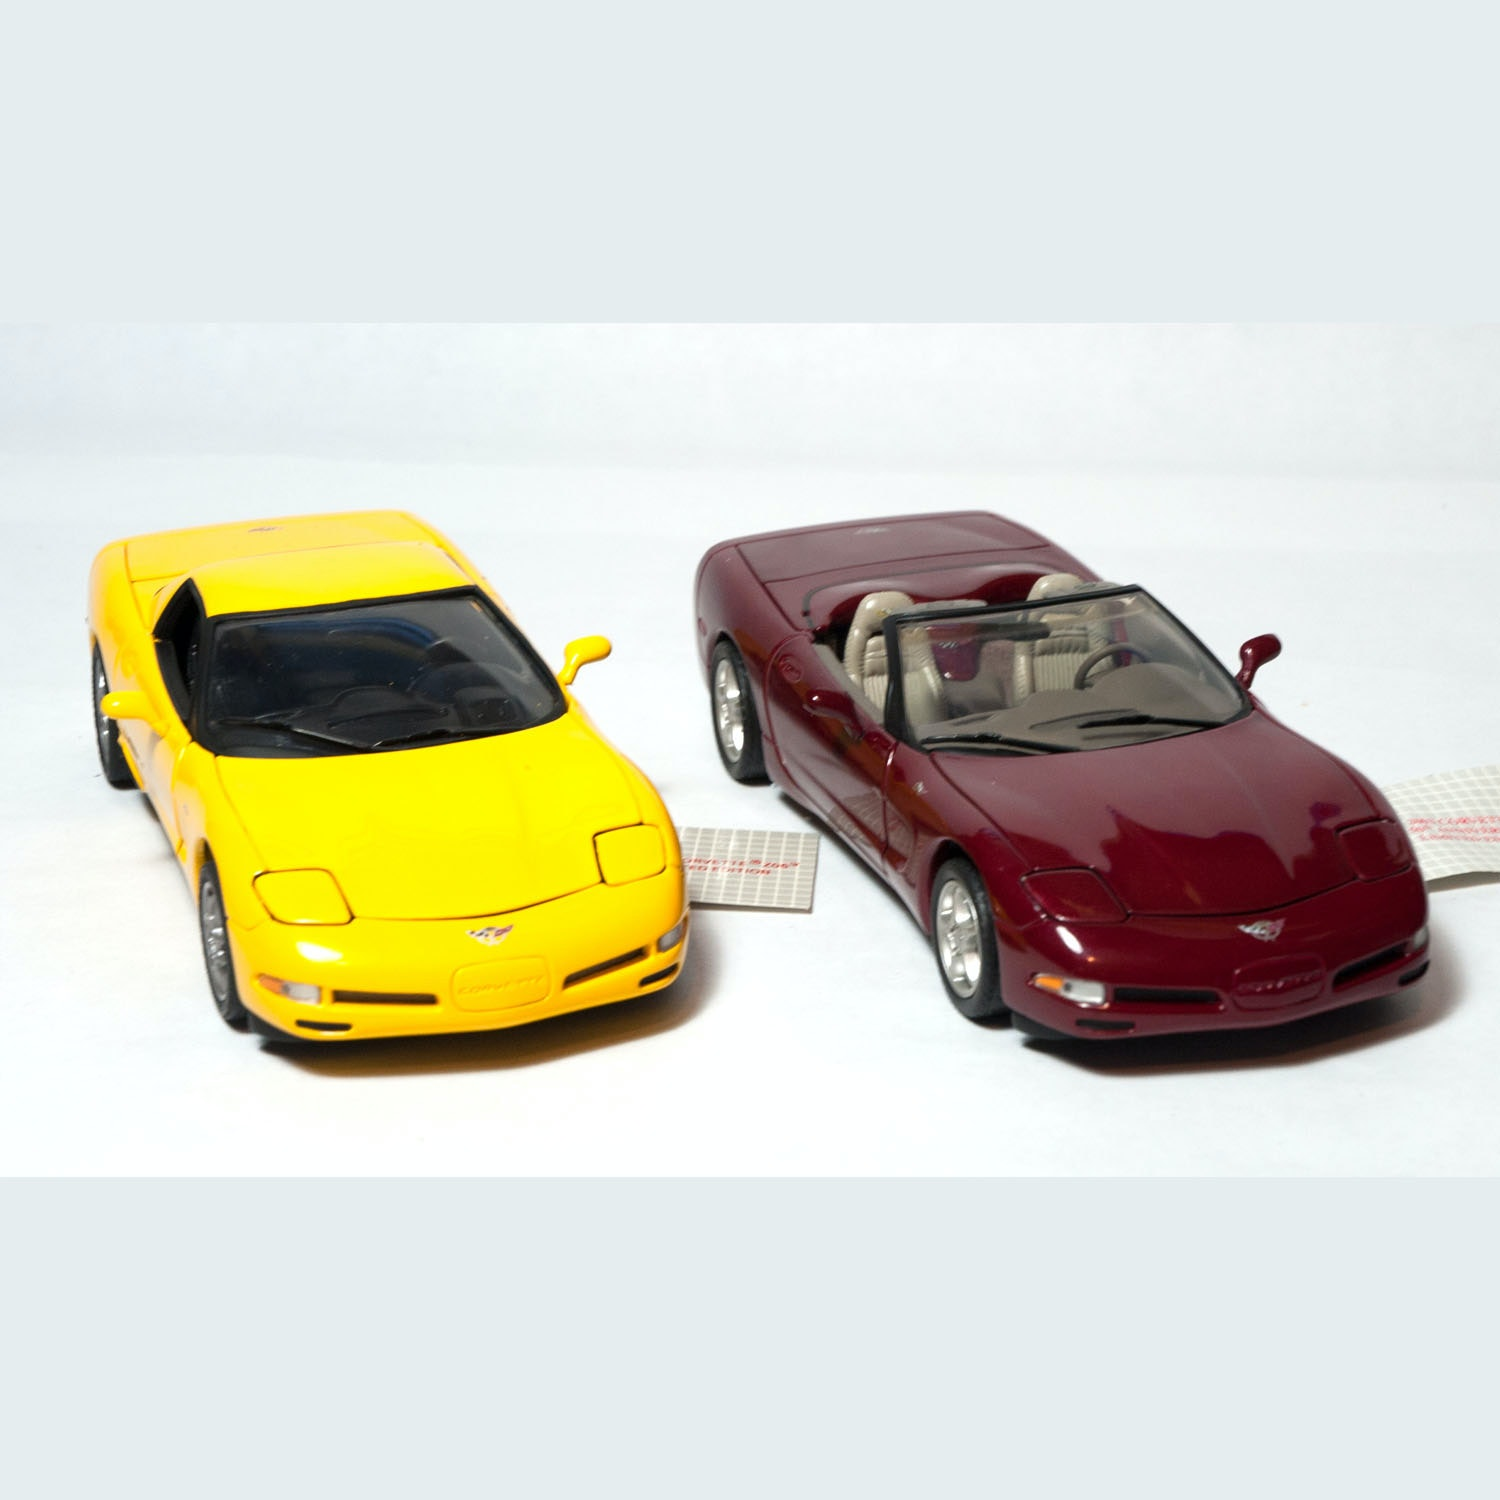 2003 Corvette Z06 and 50th Anniversary Franklin Mint Die Cast Models